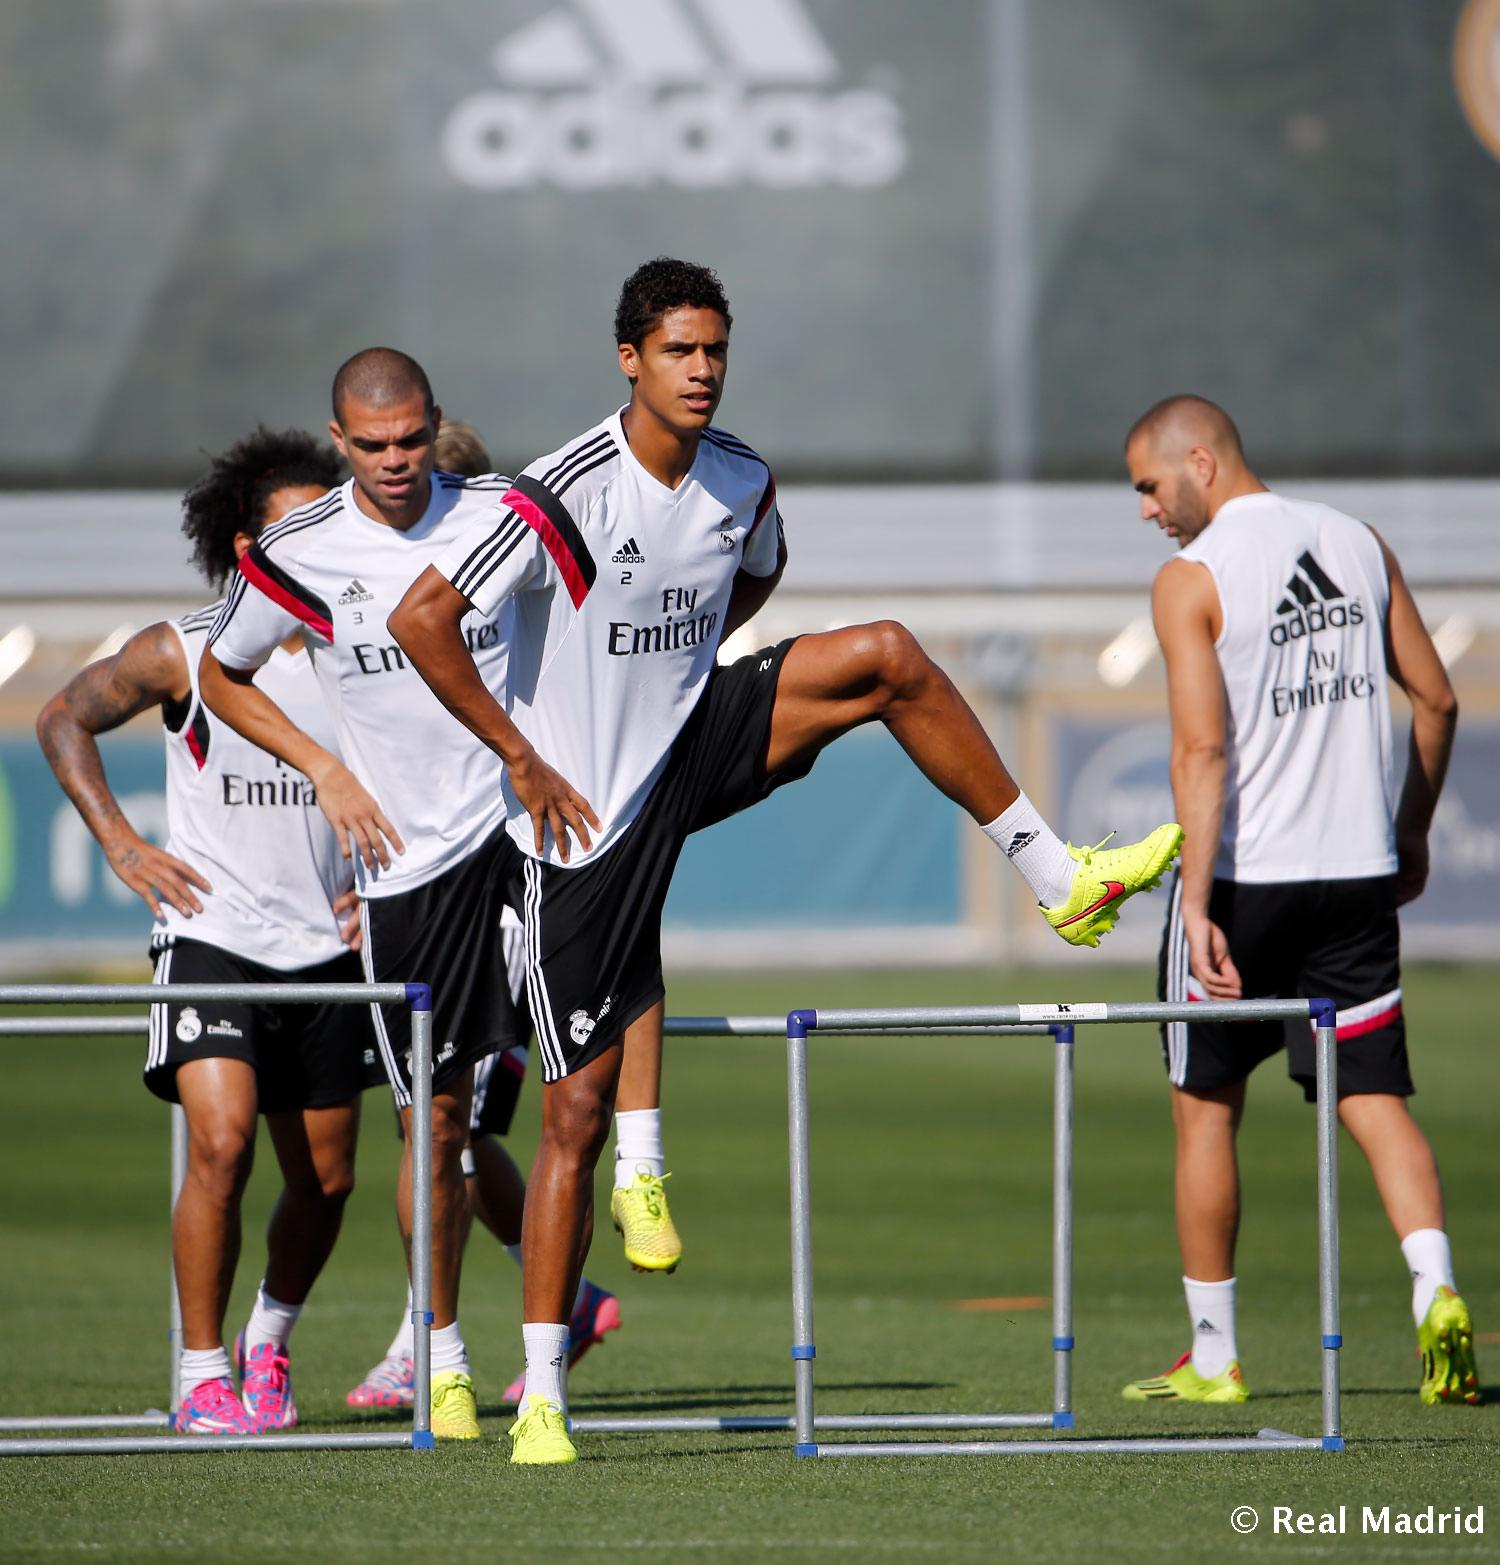 Real Madrid - Entrenamiento del Real Madrid - 12-09-2014